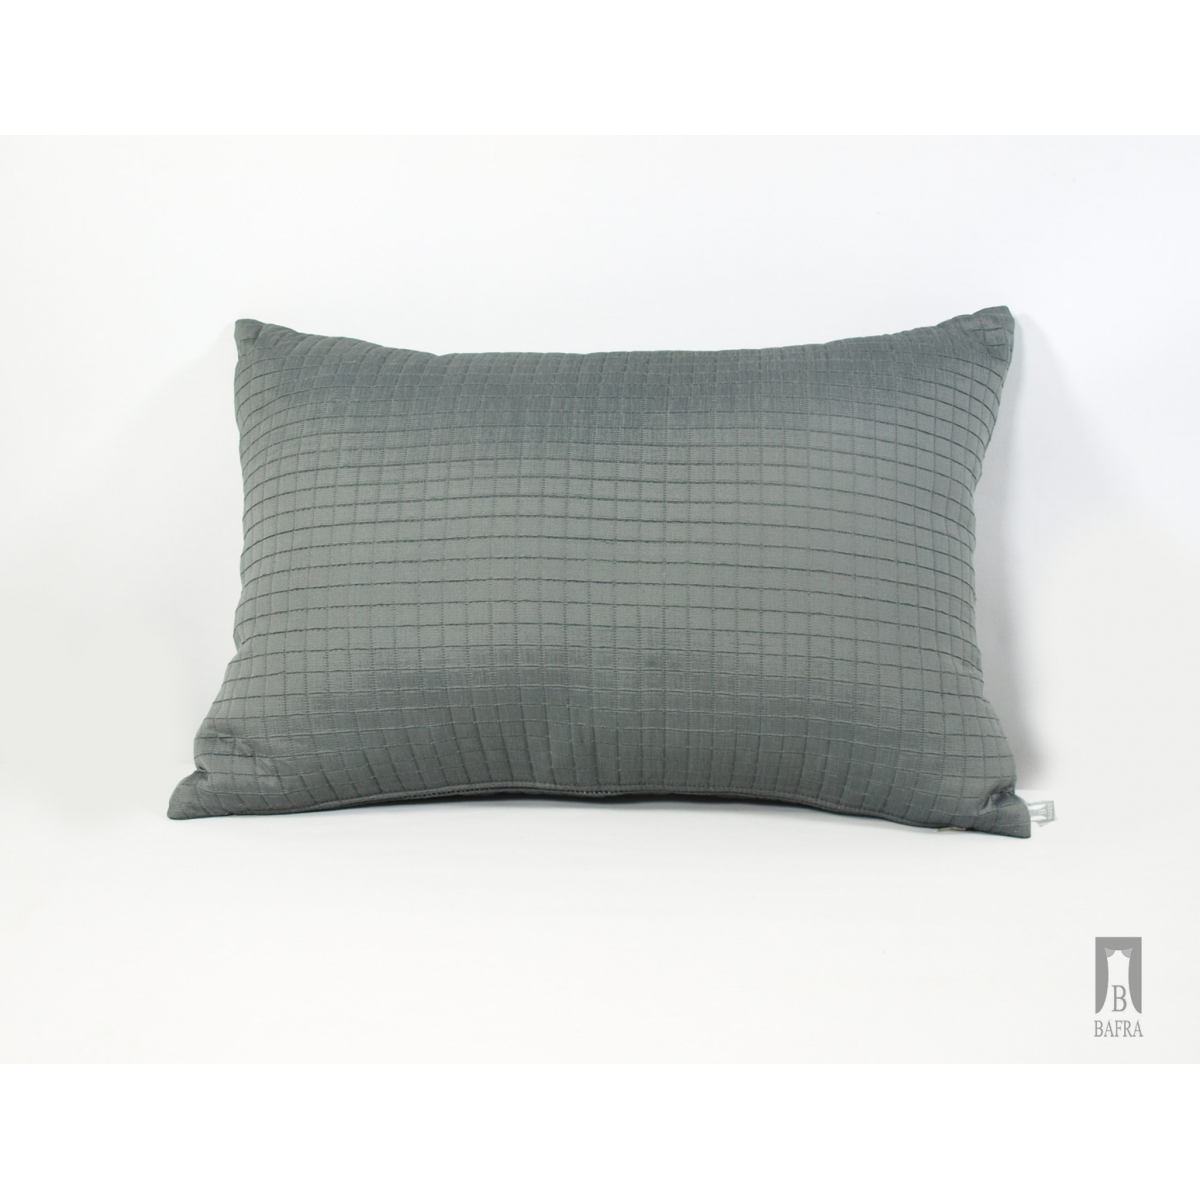 Pillow with floral motif